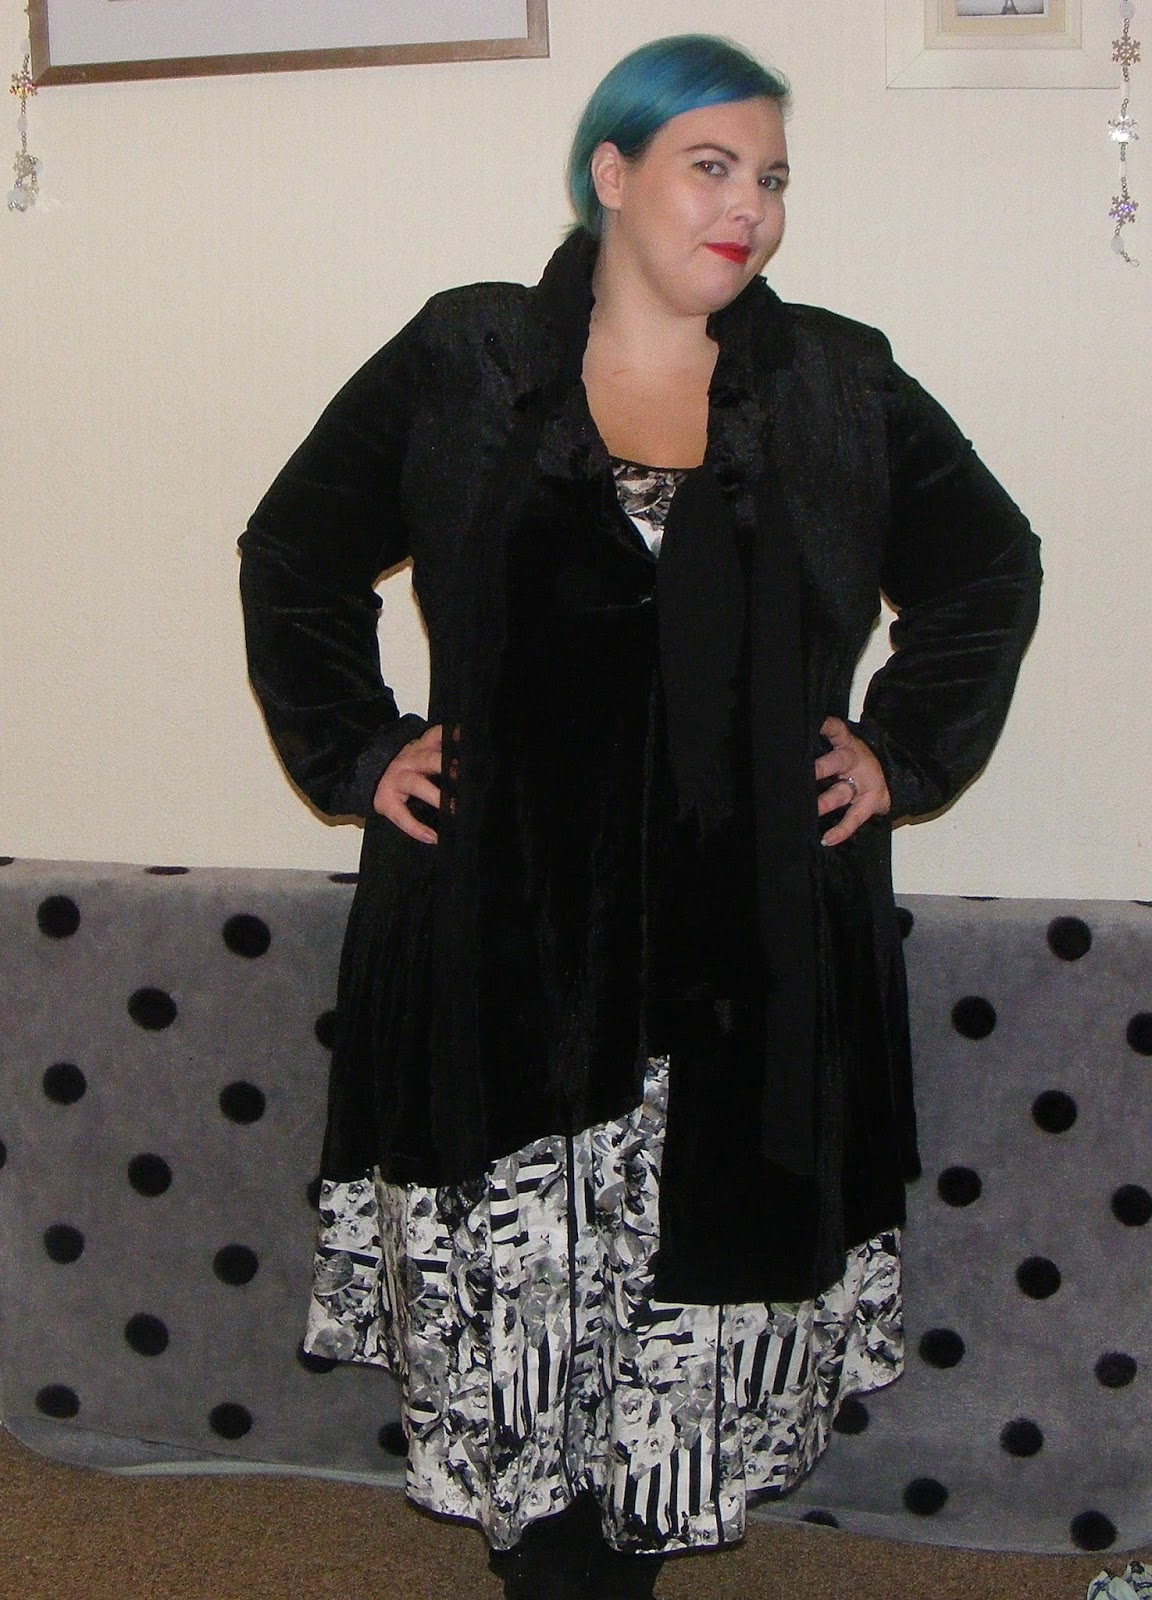 review, taking shape, dress, coat, plus size, plussize, fat, chubby, fashion, fatshion, clothes, woman, lady, girl, bbw, posing, lipstick, monochrome, velour